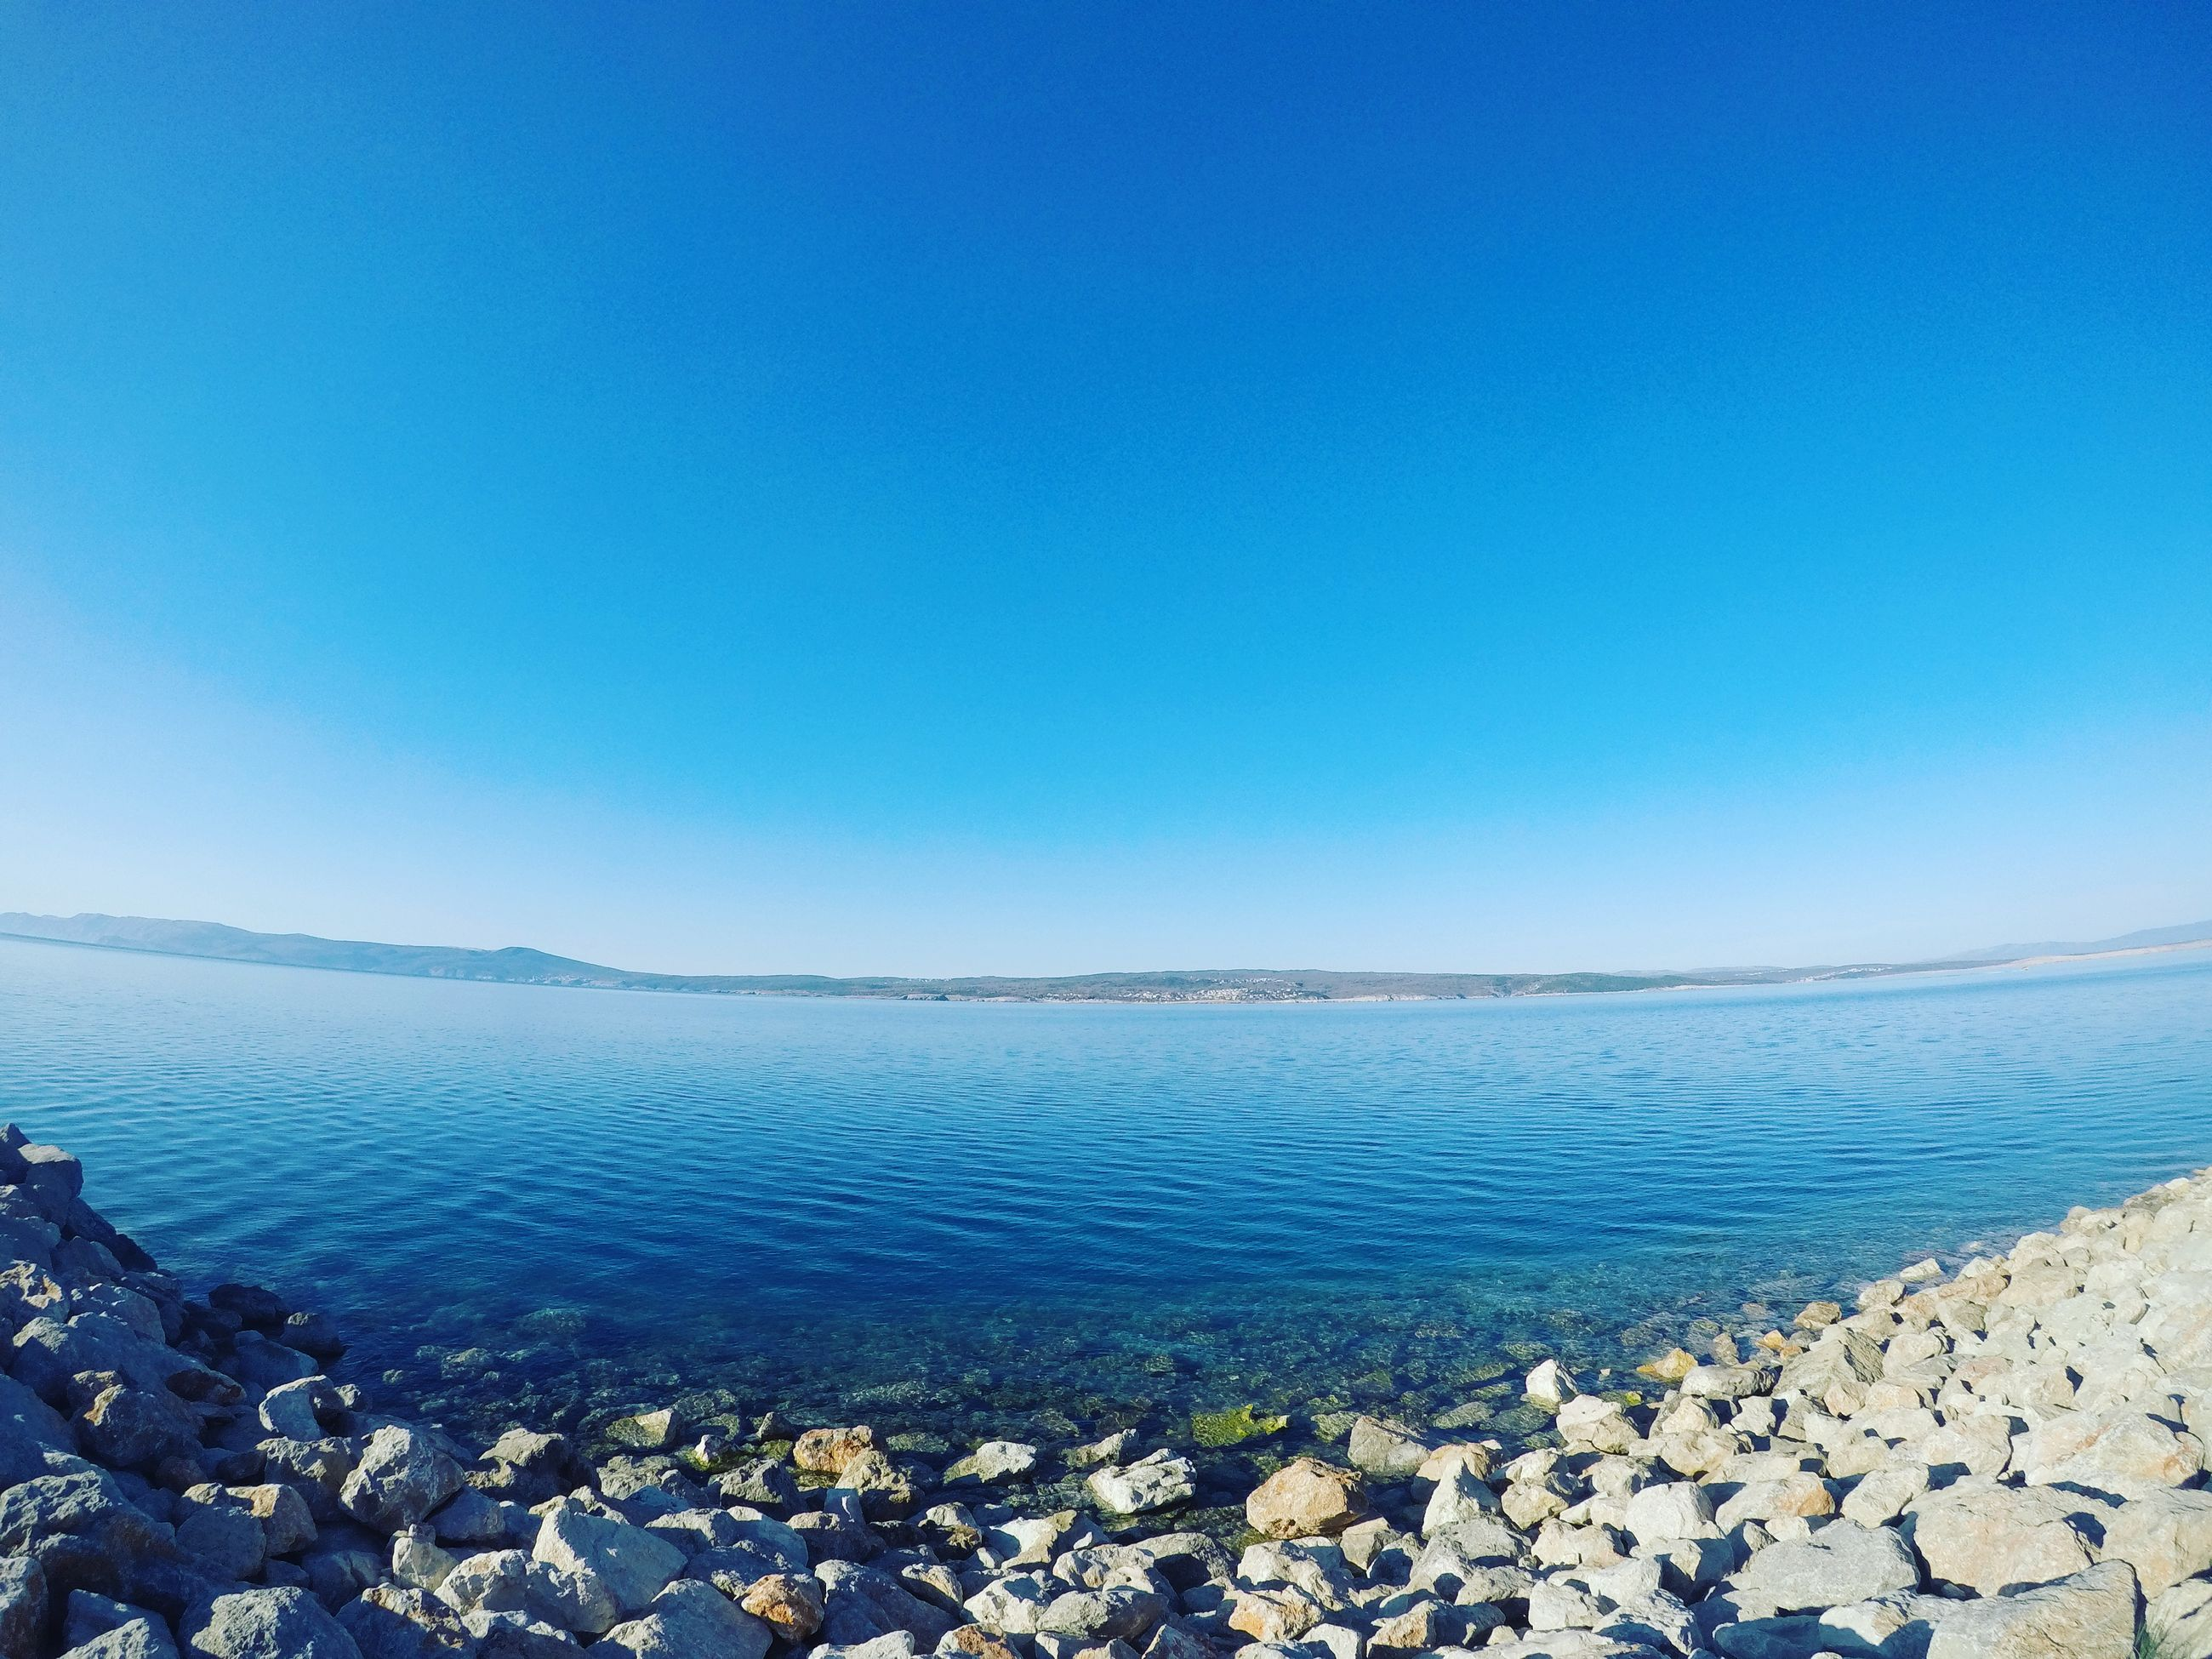 blue, clear sky, water, tranquility, nature, agriculture, farm, sky, growth, beauty in nature, scenics, rural scene, tranquil scene, plant, no people, day, outdoors, close-up, freshness